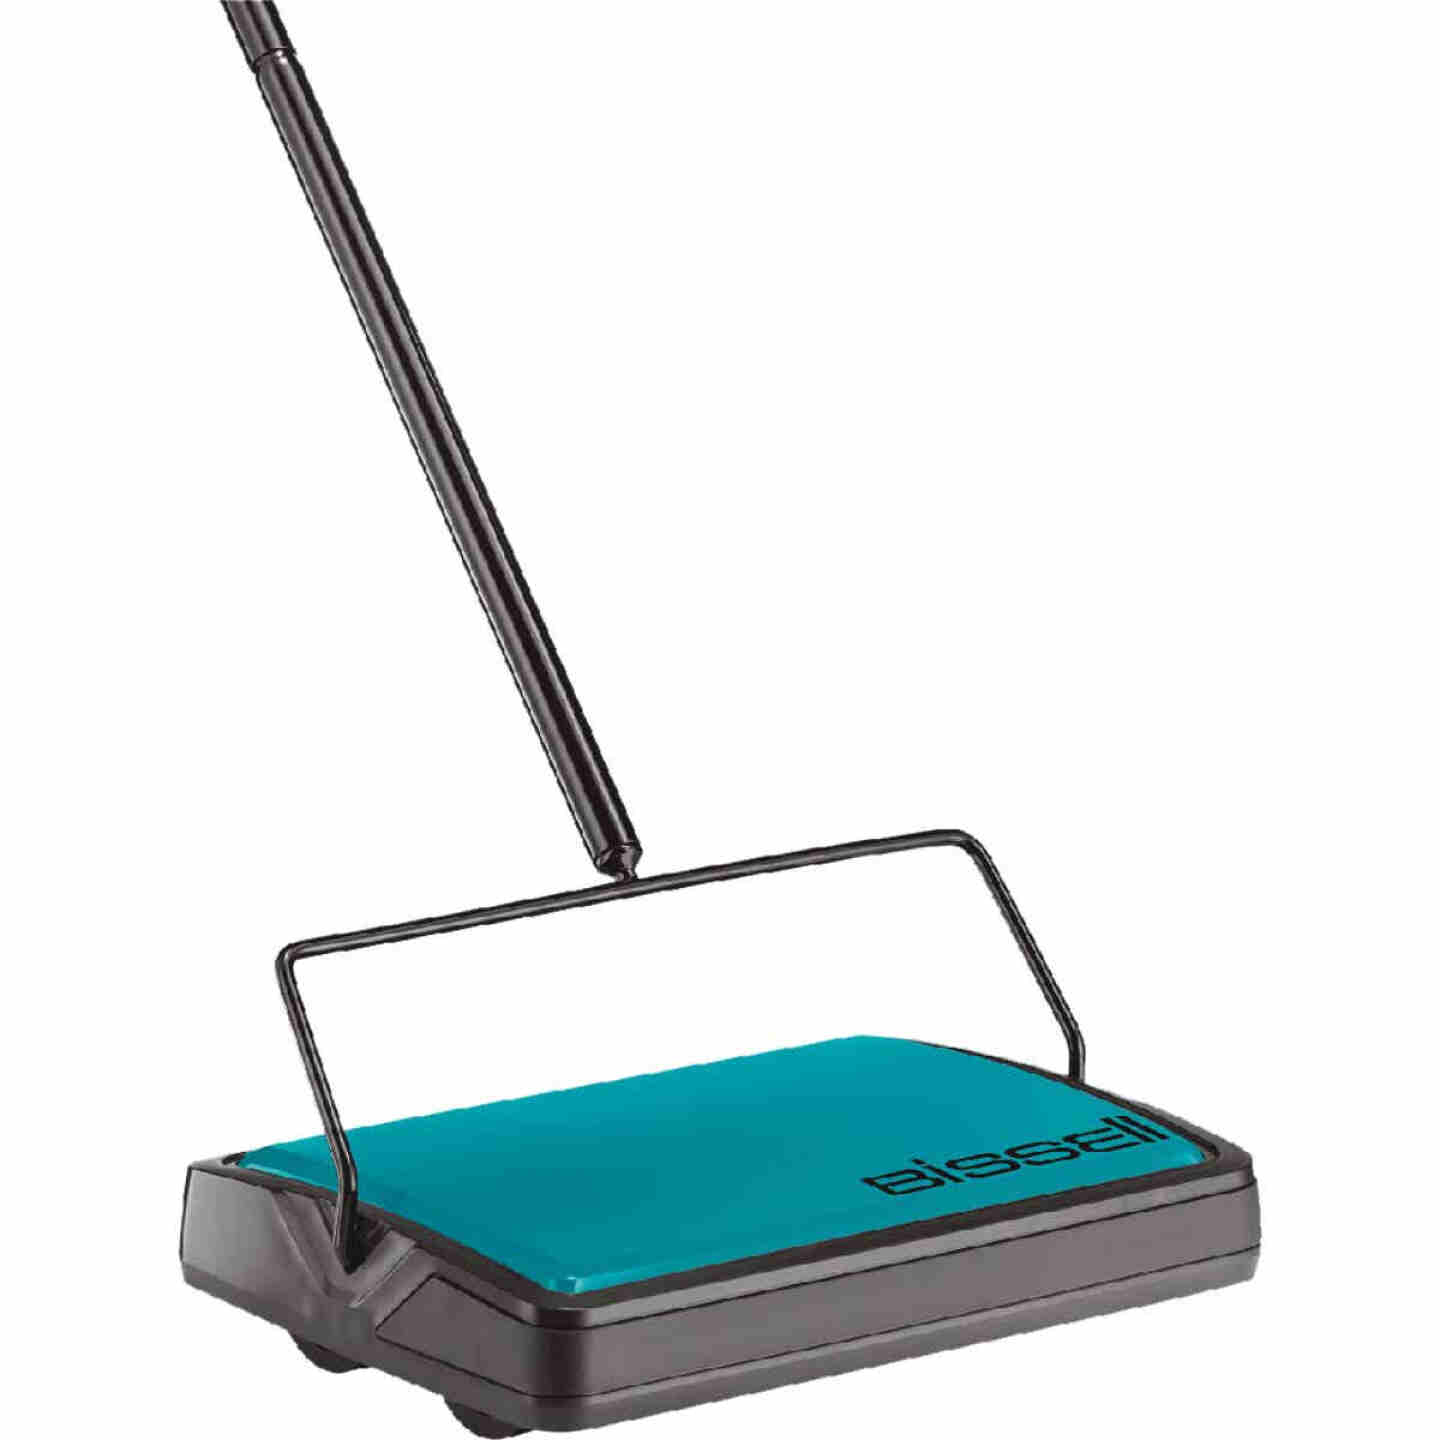 Bissell EasySweep Compact Manual Sweeper Image 1